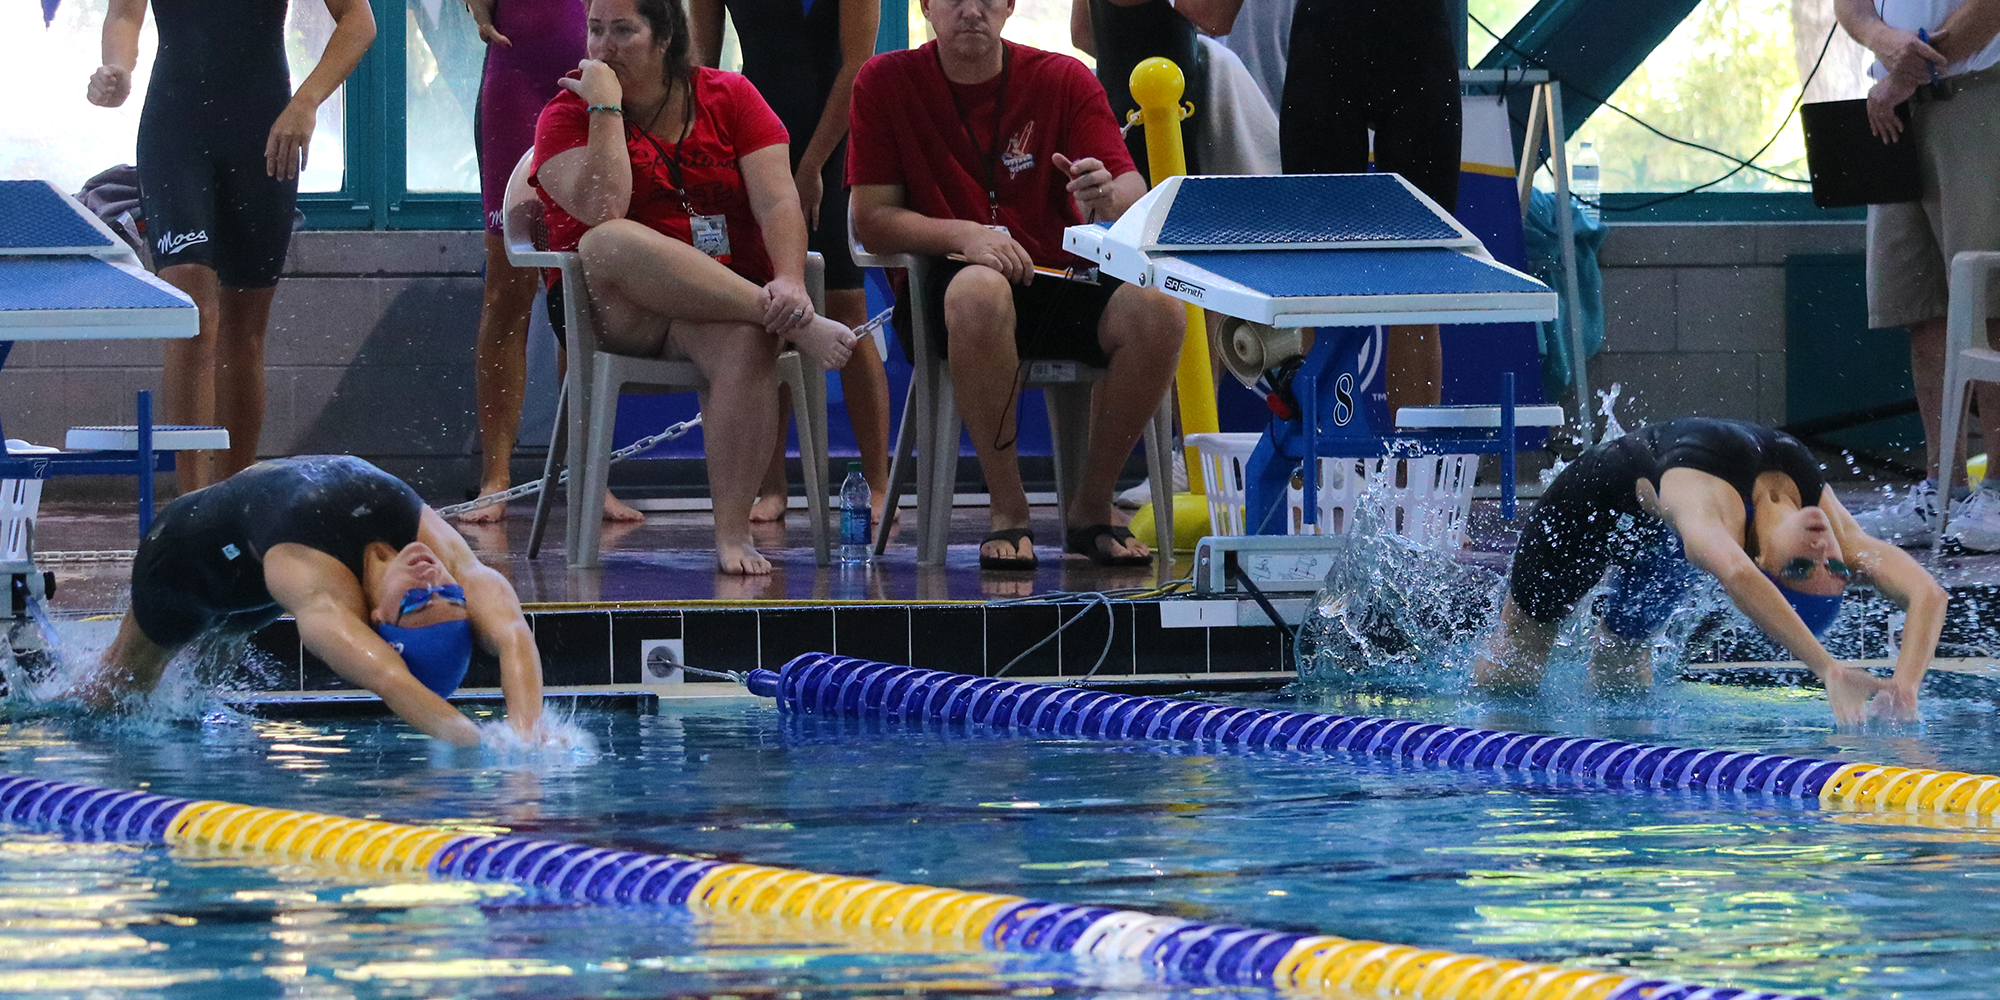 SSC Championship – Swimming Adds Excitement on Day 3